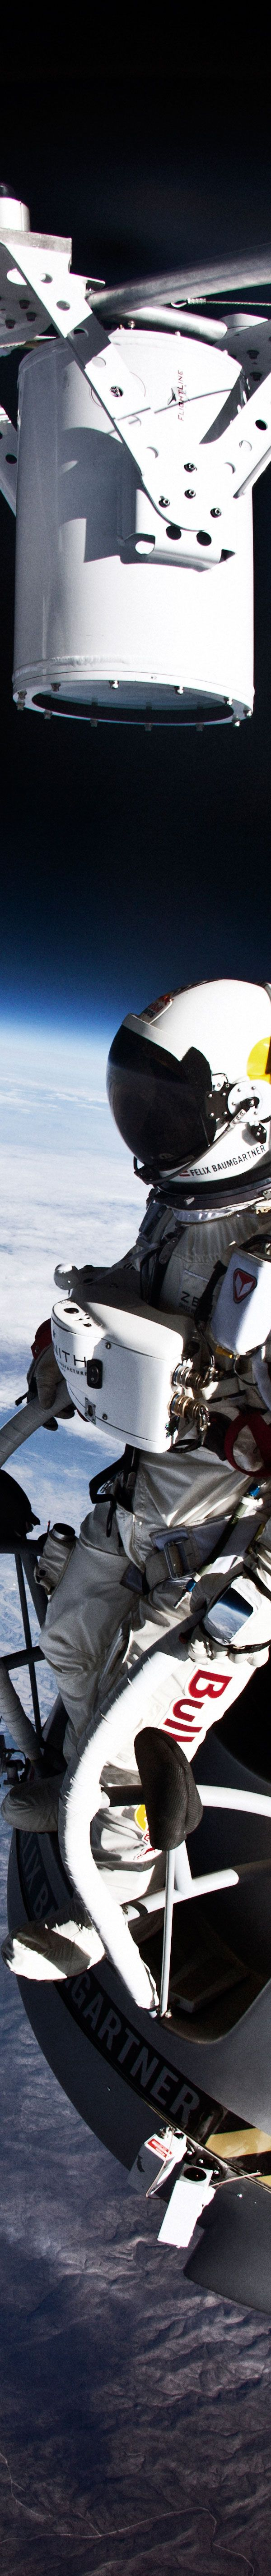 Felix Baumgartner jumps to earth from the edge of space